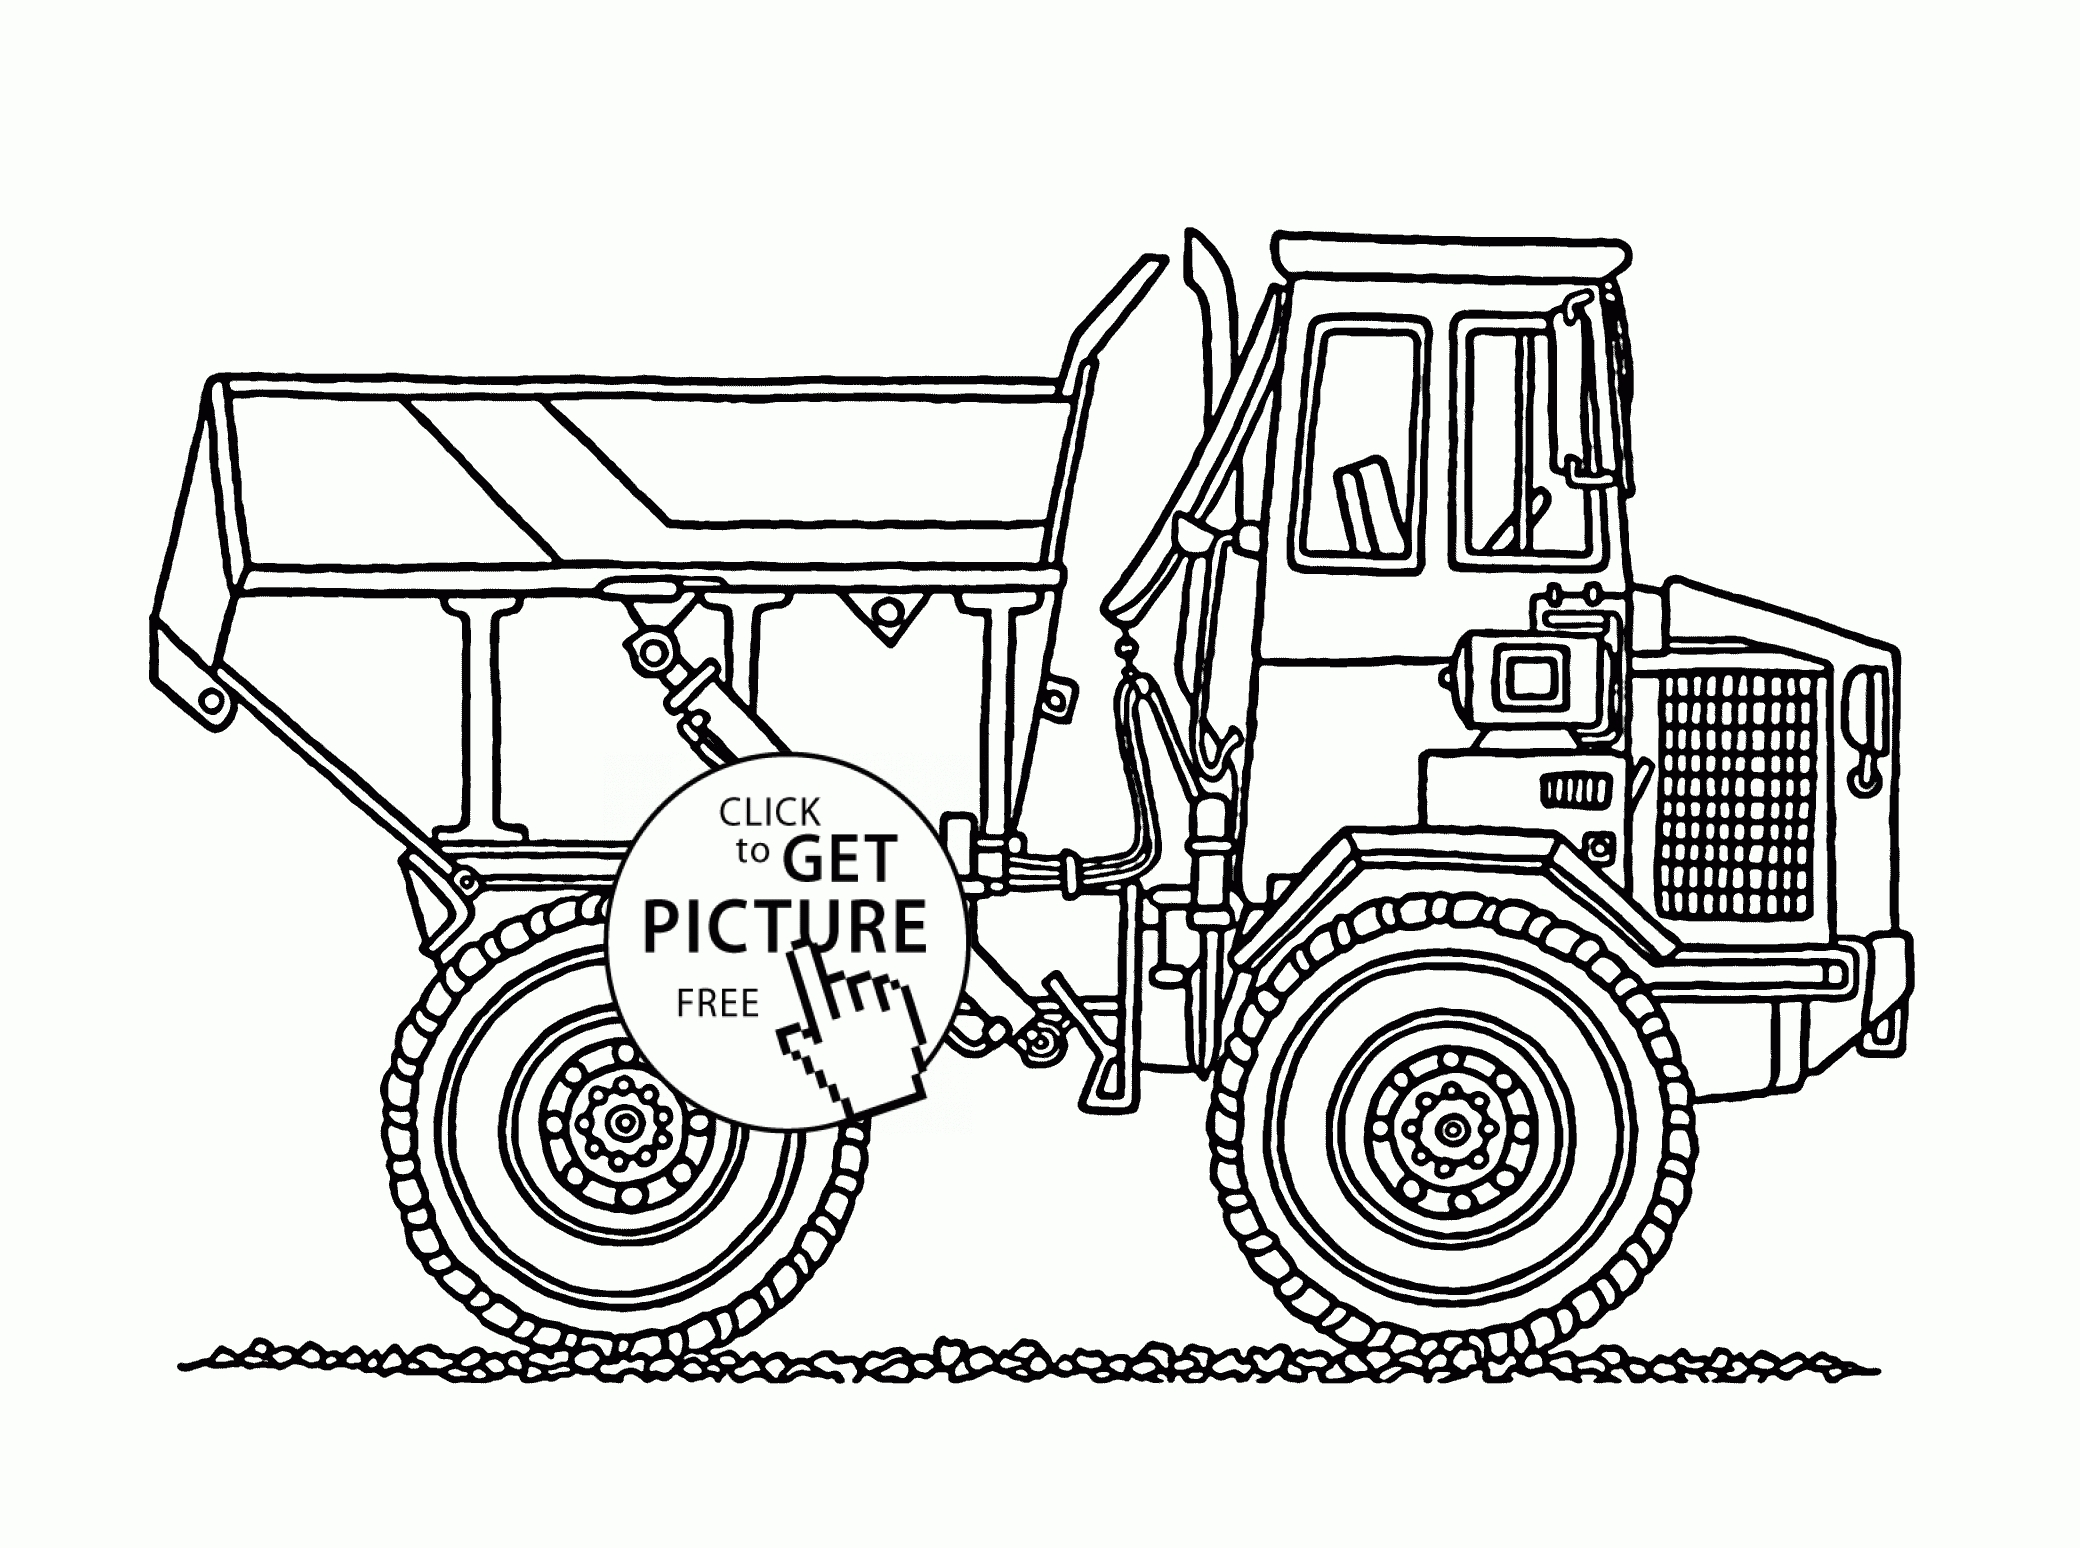 construction vehicles coloring pages - 23 construction truck coloring pages images free